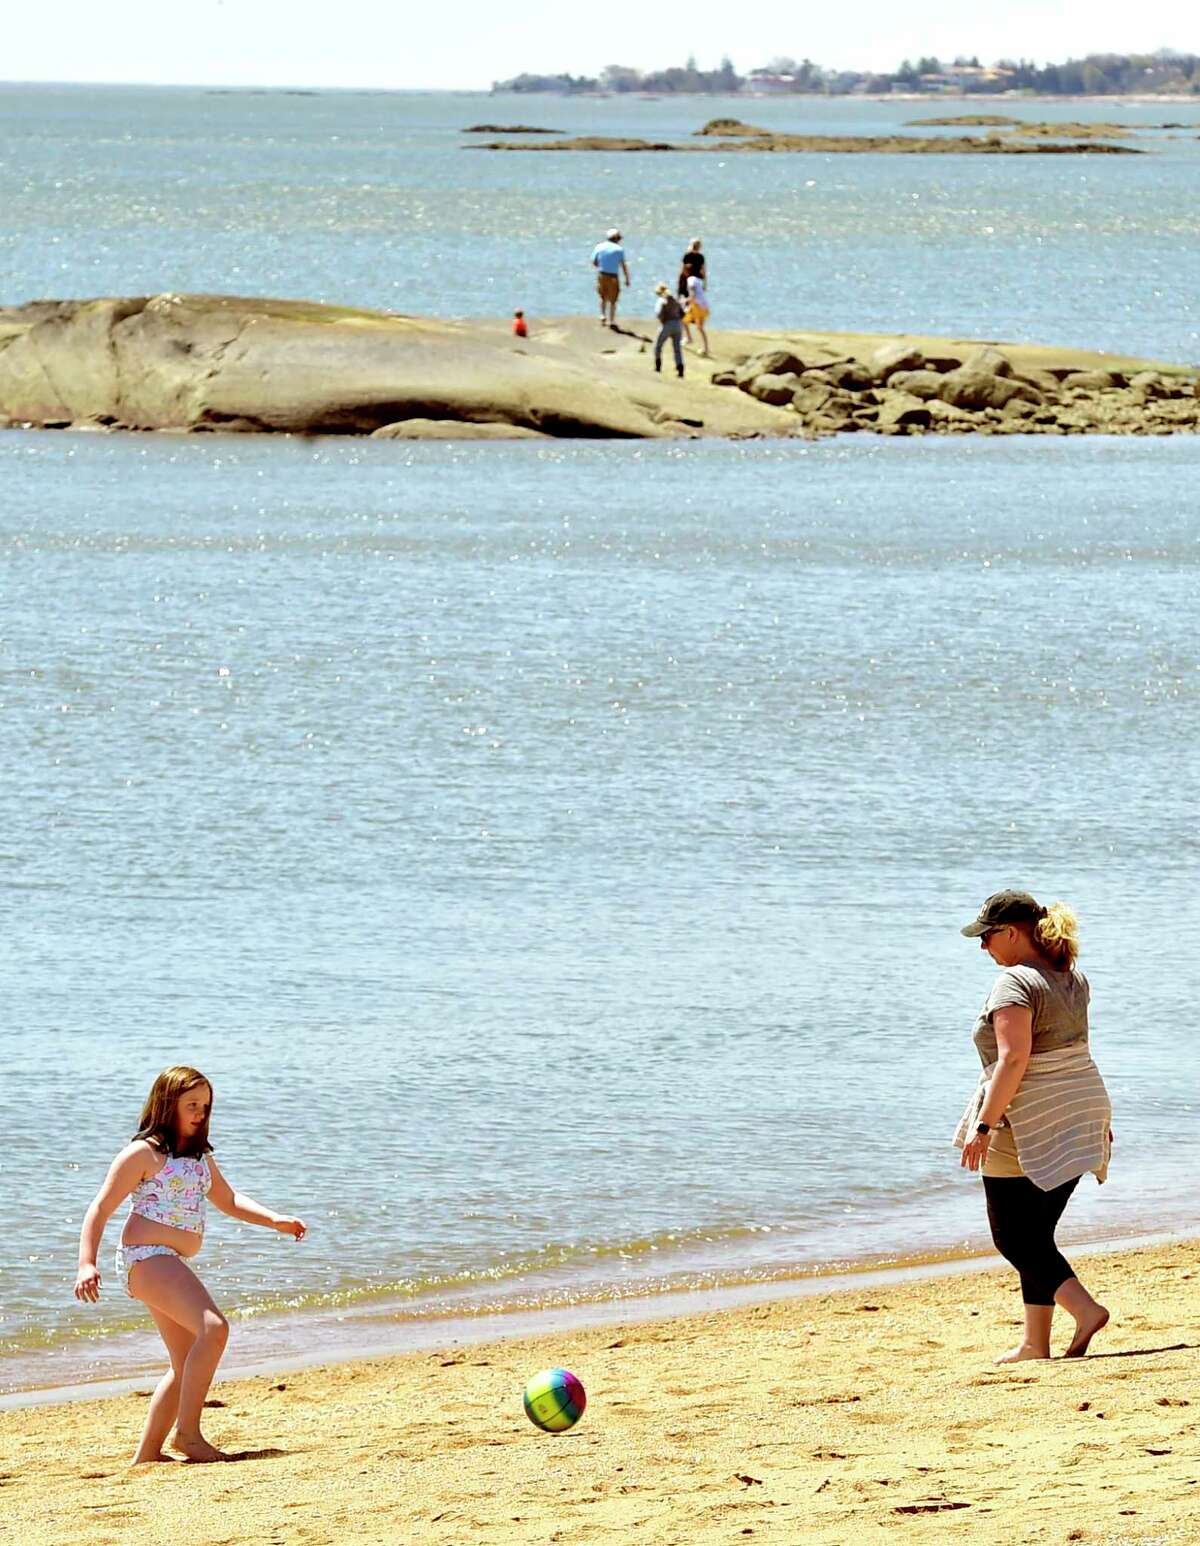 Madison, Connecticut, Saturday, May 1, 2020: People enjoy the warmth and sunshine Saturday at the Surf Club town beach in Madison during the Covid-19 / Coronavirus pandemic.